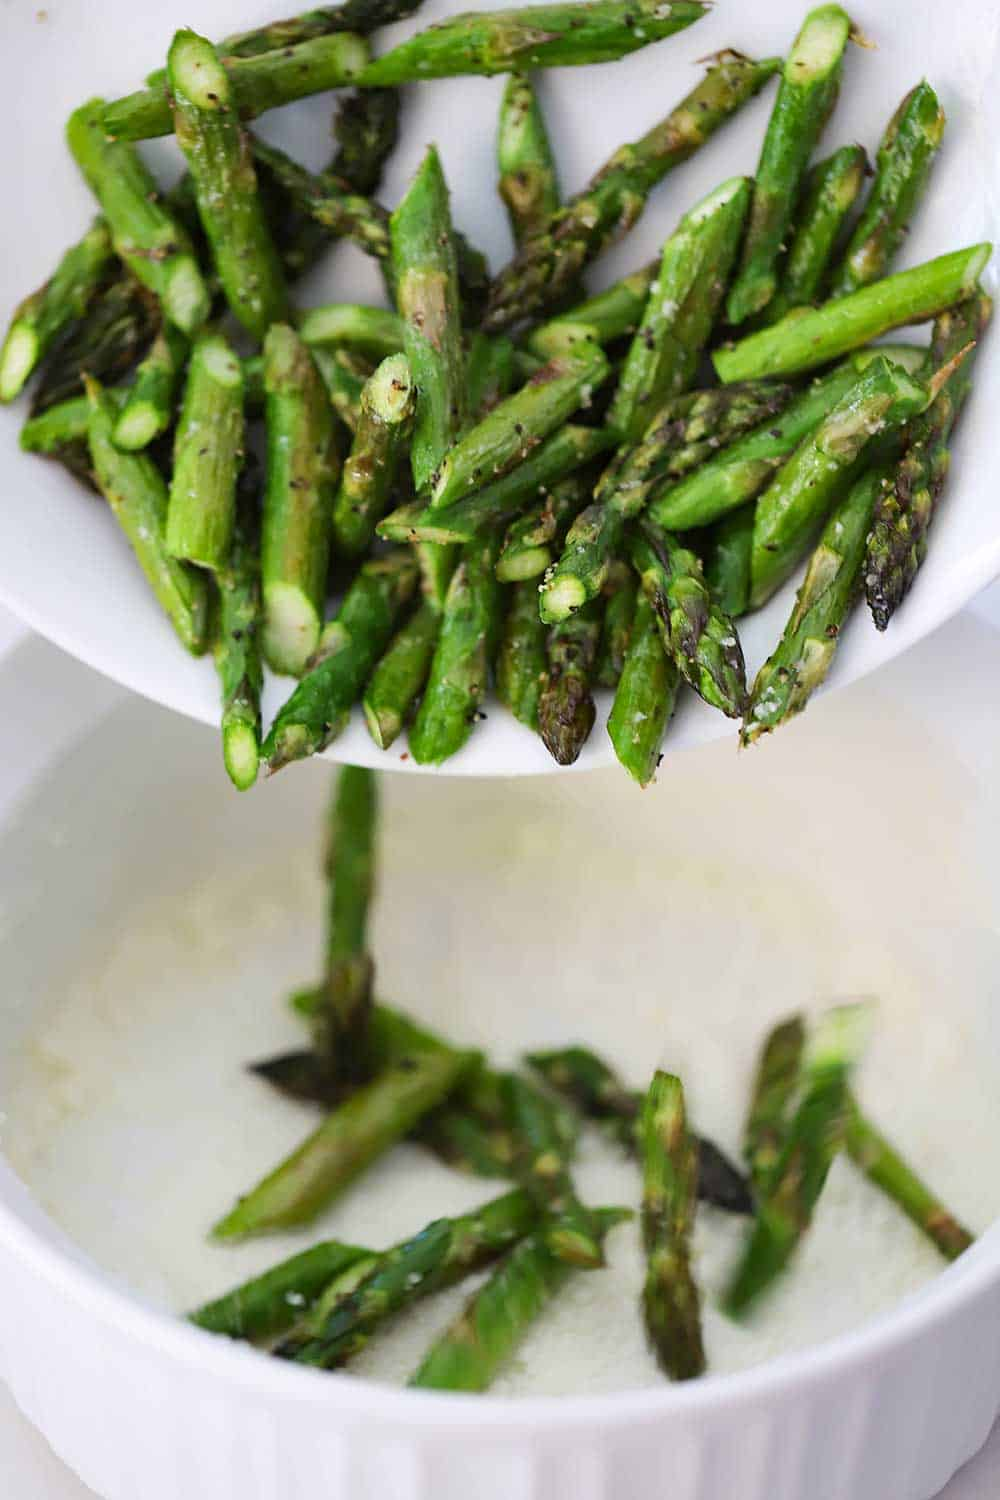 A plate filled with cut roasted asparagus pieces being dropped into a white souffle dish.